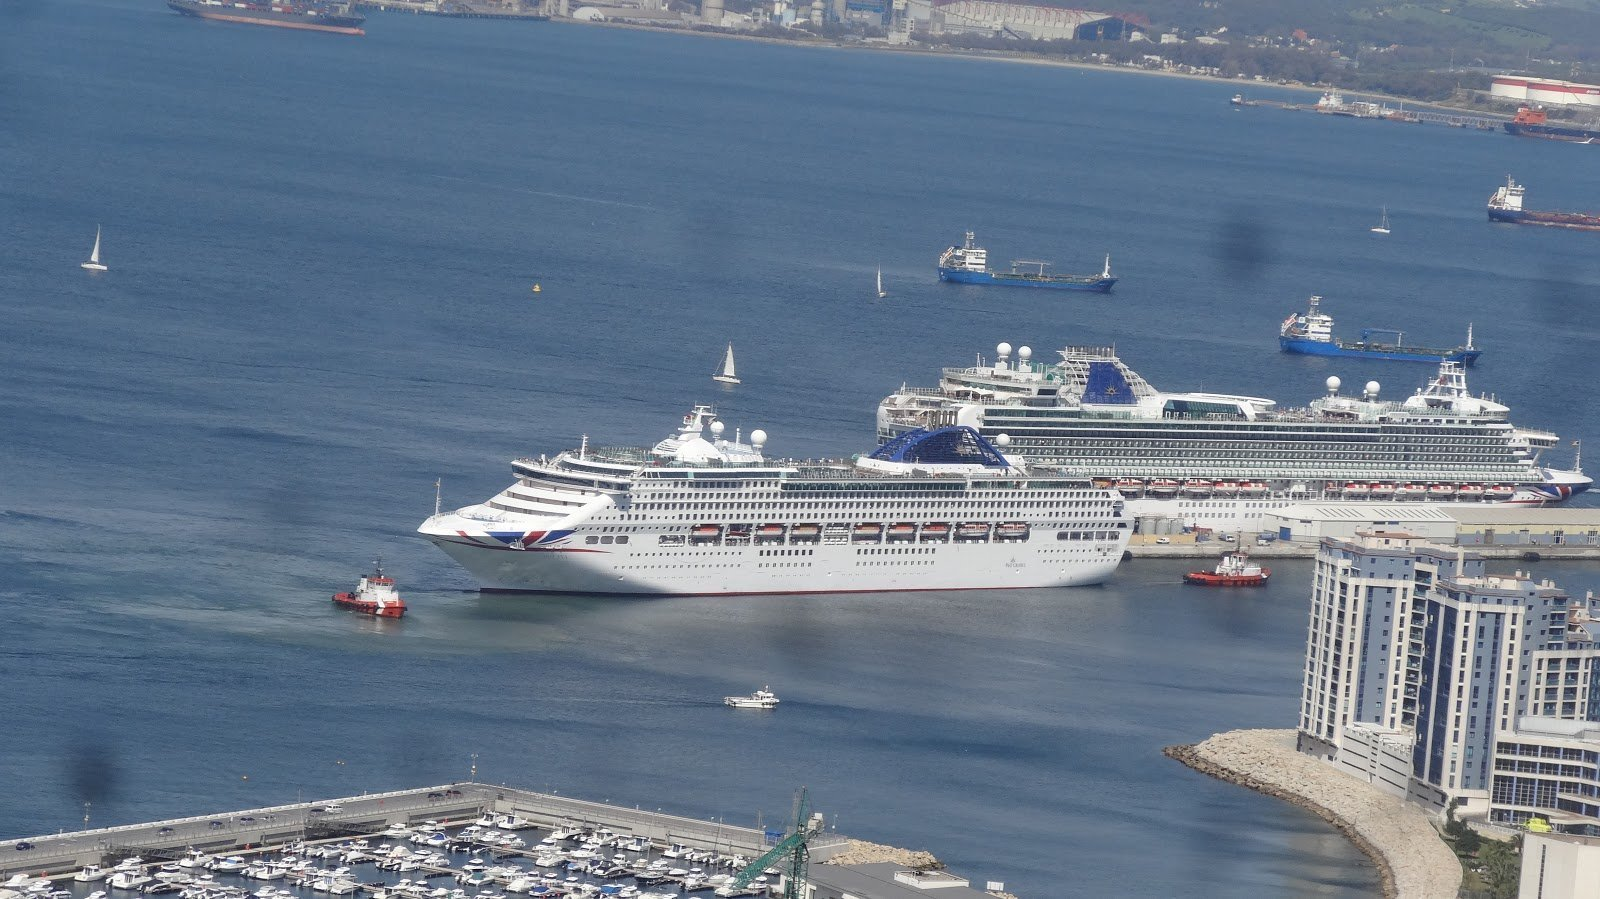 Cruise ships in port at Gibraltar